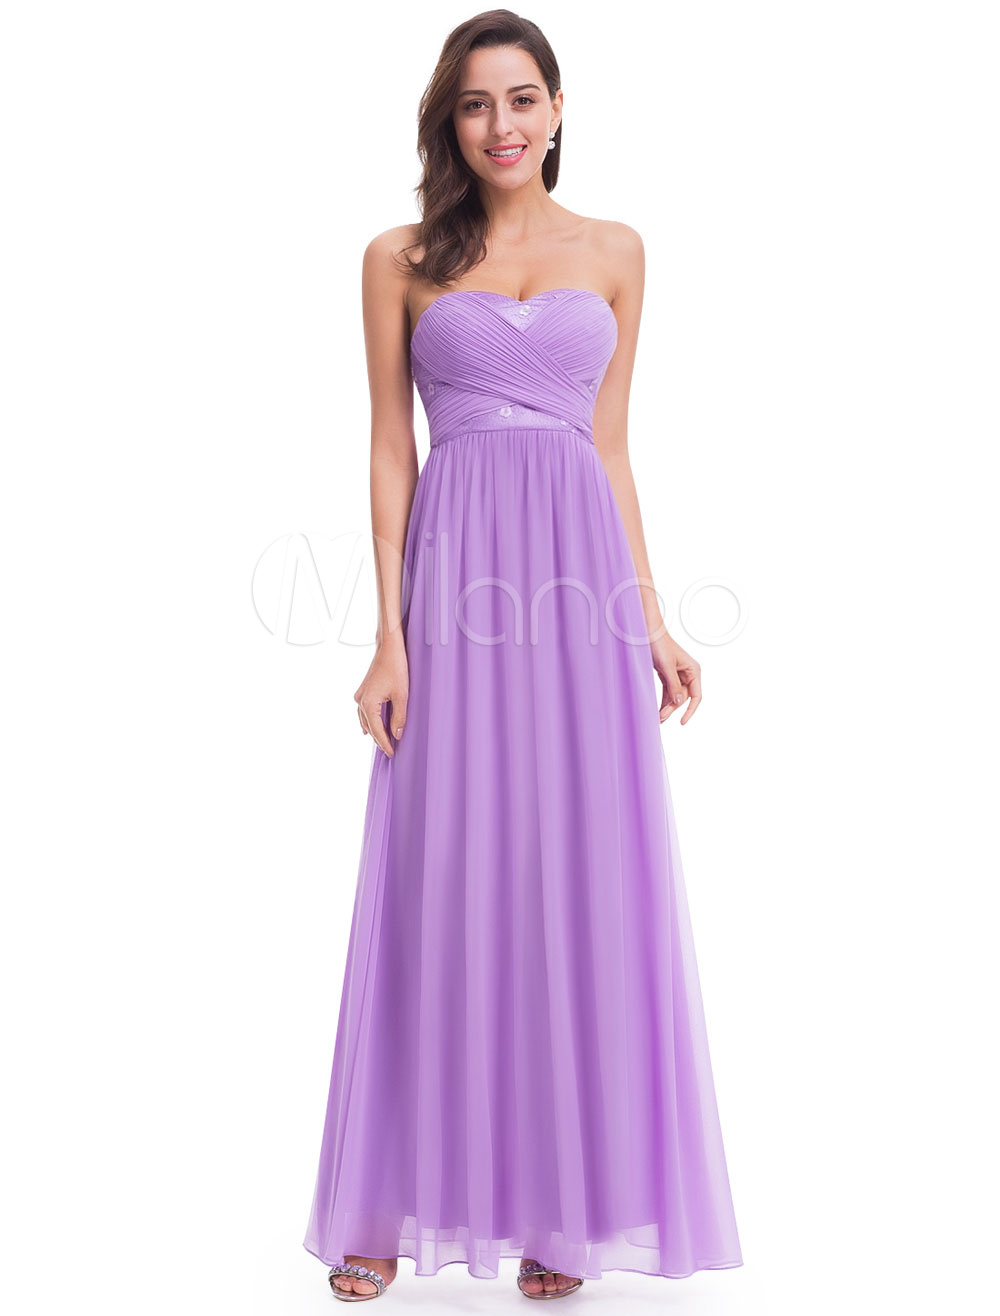 Buy Lilac Bridesmaid Dresses Long Strapless Sweetheart Chiffon Ruched A Line Floor Length Wedding Guest Dresses for $114.39 in Milanoo store